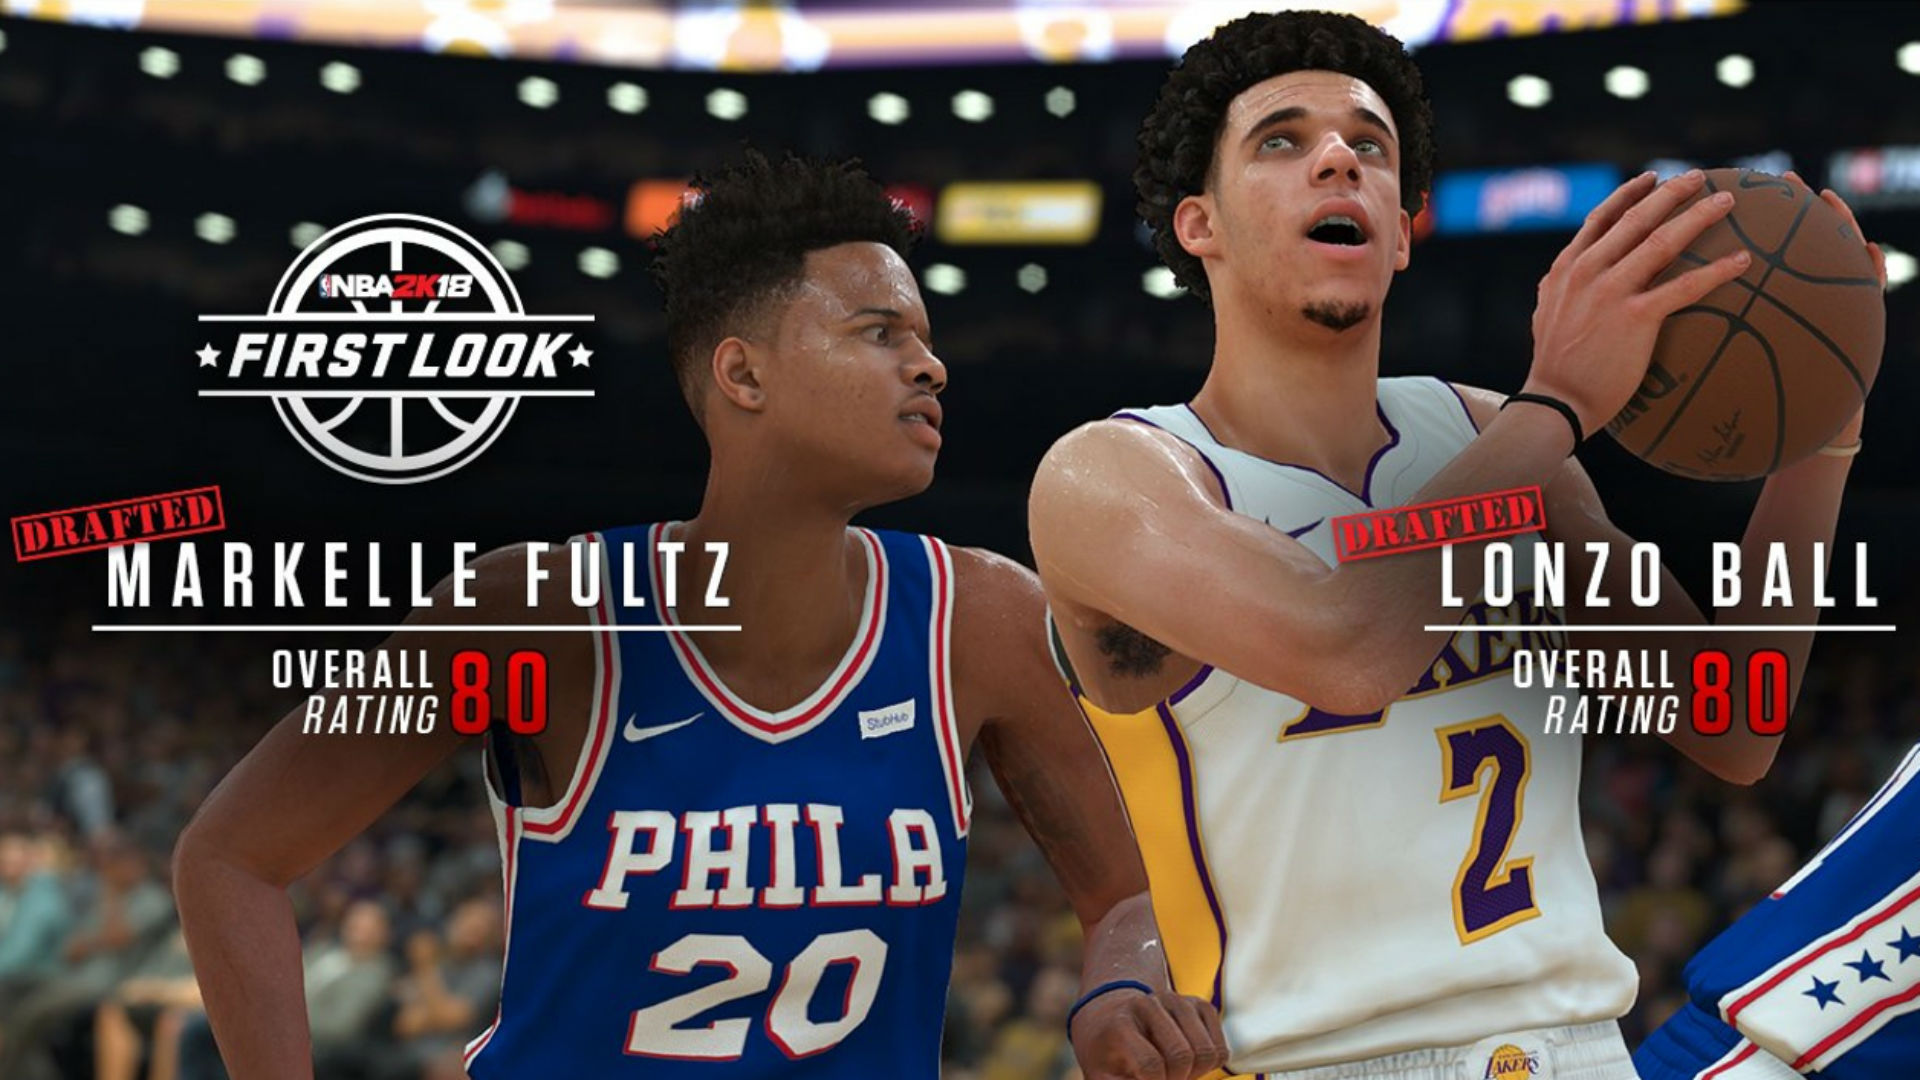 Lonzo Ball, Markelle Fultz and Kevin Durant praised in National Basketball Association 2K ratings